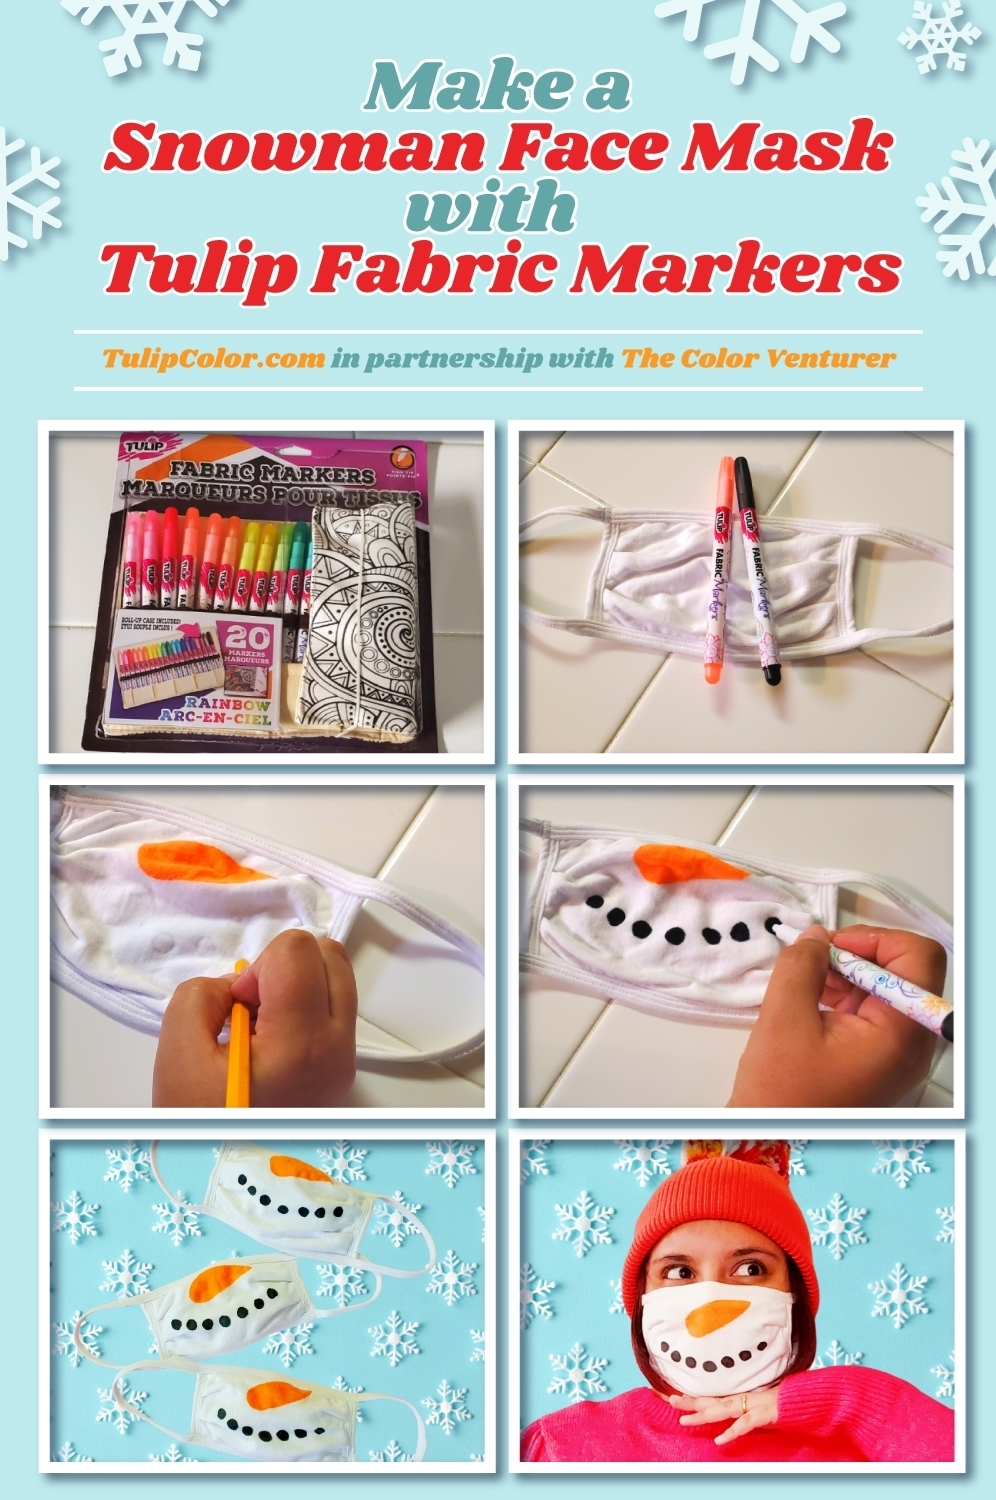 Make a Snowman Face Mask with Fabric Markers